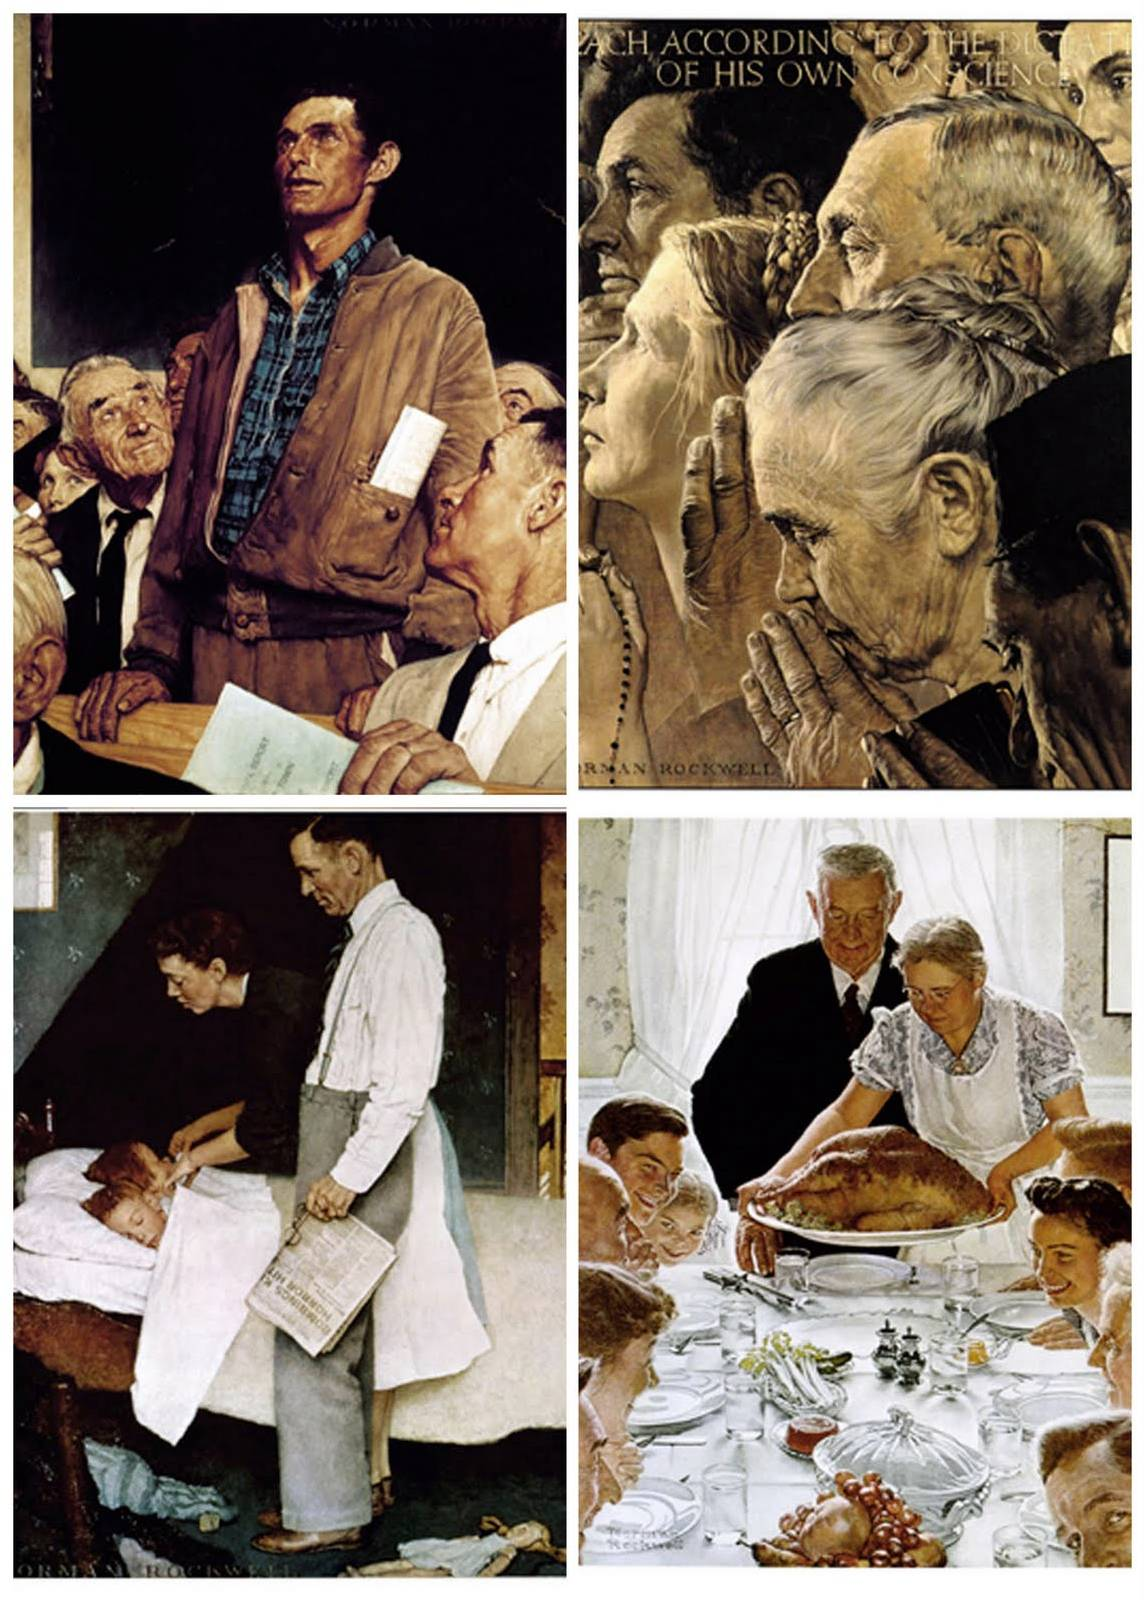 fdr four freedoms speech Four freedoms definition, freedom of speech, freedom of worship, freedom from want, and freedom from fear: stated as goals of us policy by president franklin d roosevelt on january 6, 1941.